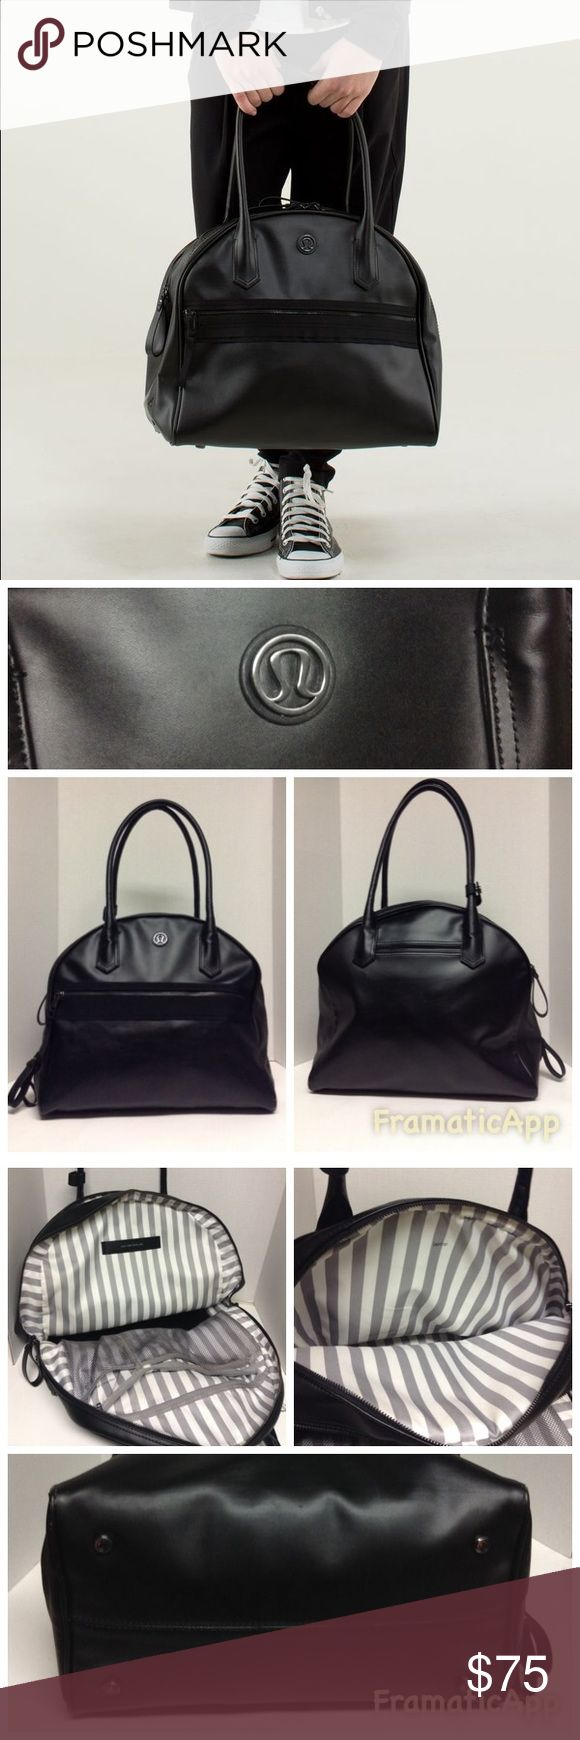 Lululemon Sweat Once A Day Bag Lululemon Sweat once a Day bag. Pre-owned with light wear 4 bottom corners scraps ,a little to the lining by zipper see photos reflected in price  . Interior pretty clean with light wear.Has Pockets for laptop, etc. Thanks for looking😊 lululemon athletica Bags Travel Bags